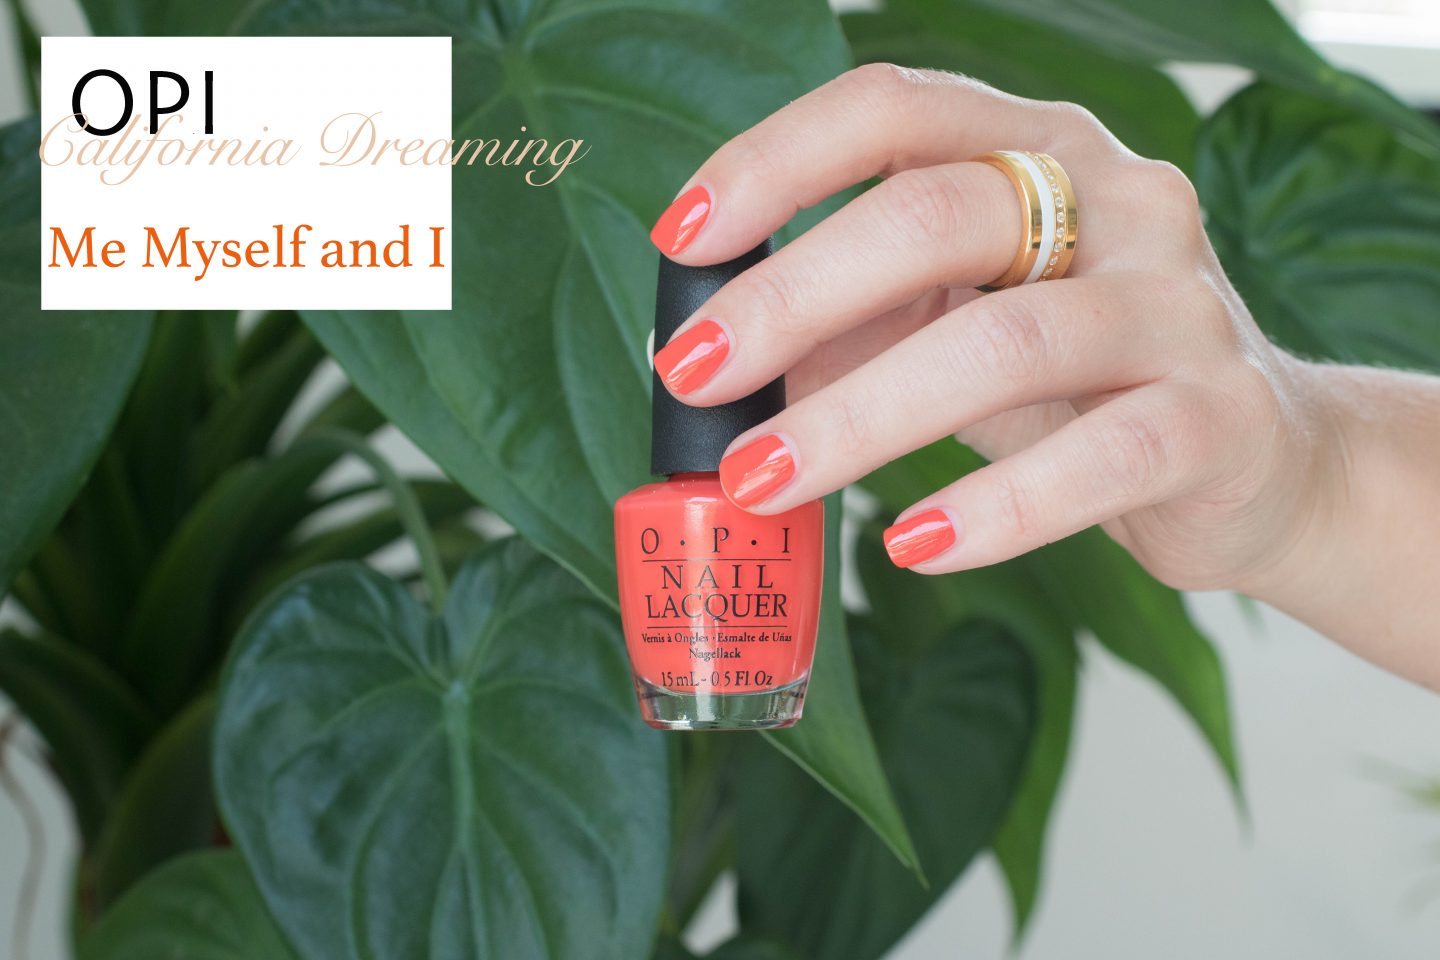 OPI California Dreaming Me Myself and I